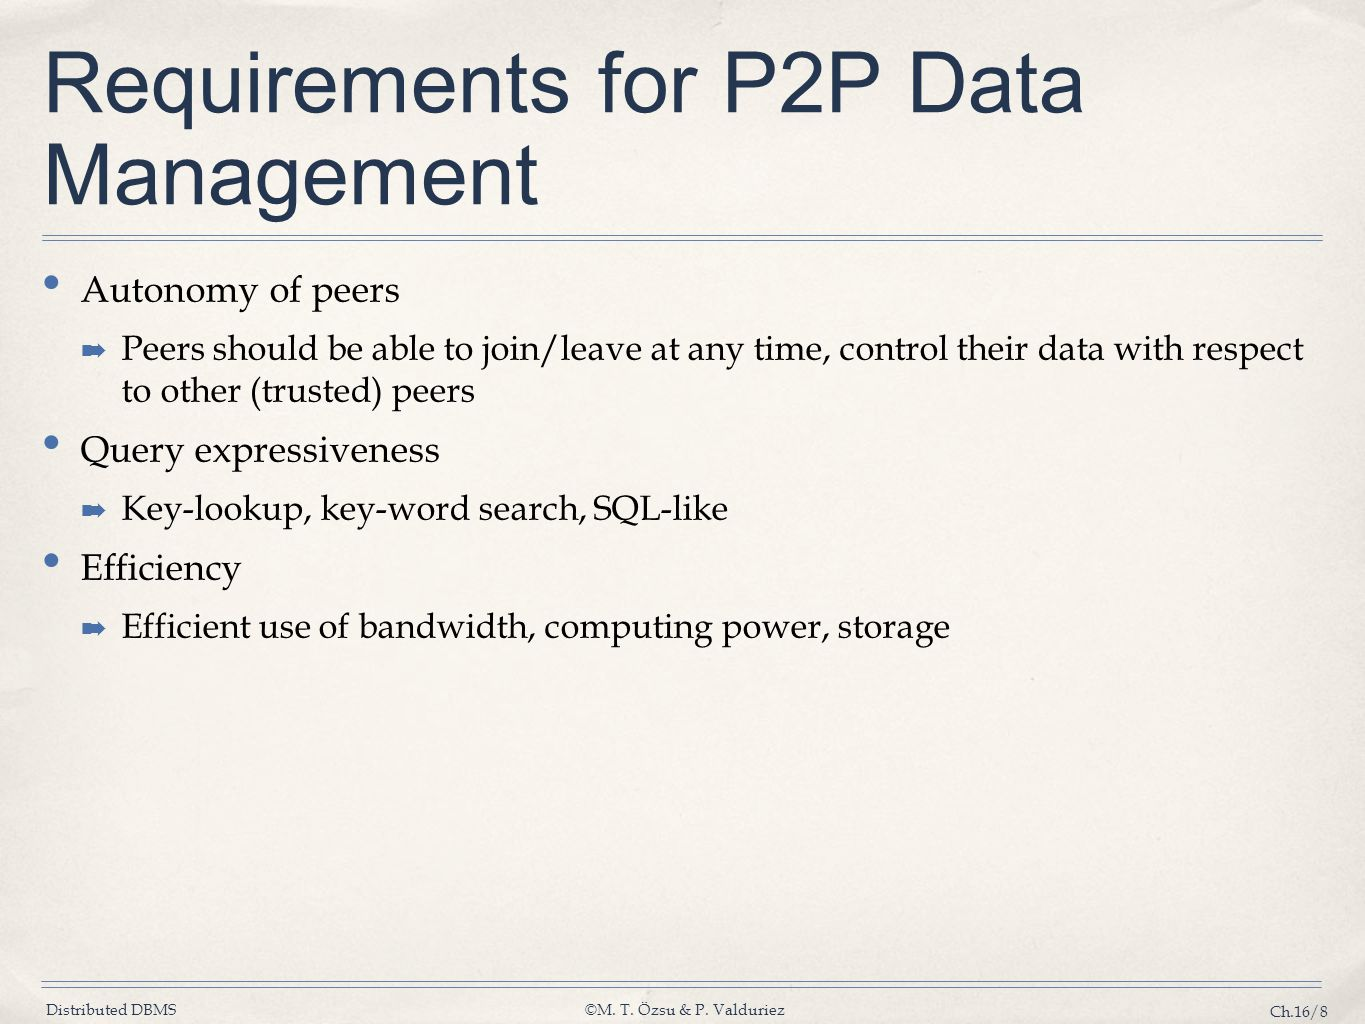 Distributed DBMS©M. T. Özsu & P. Valduriez Ch.16/8 Requirements for P2P Data Management Autonomy of peers ➡ Peers should be able to join/leave at any